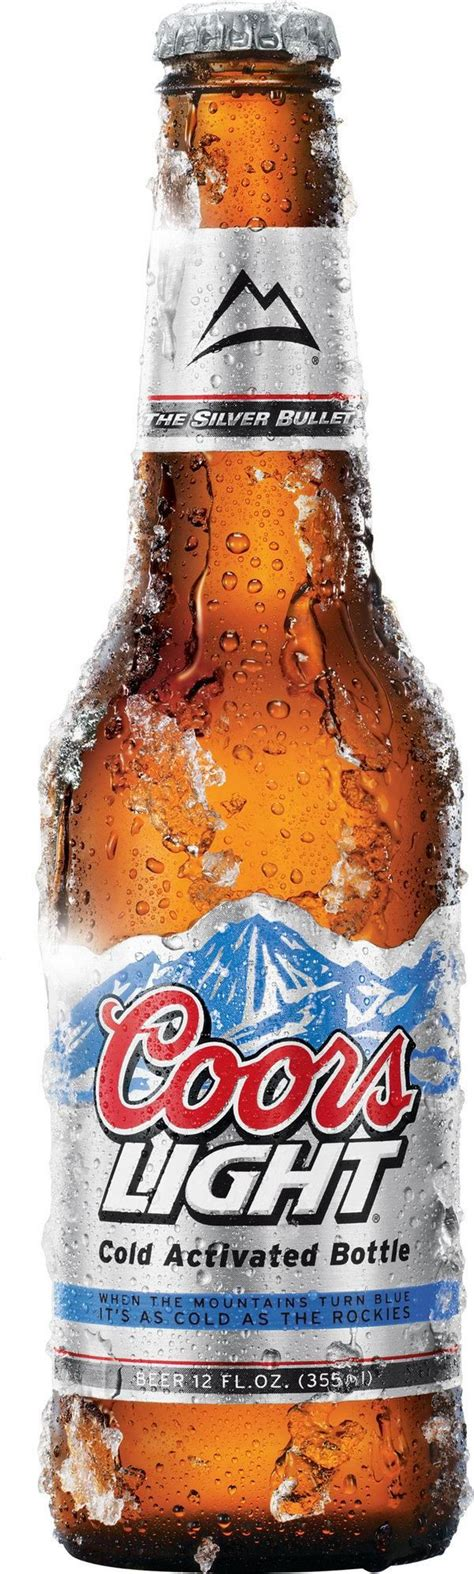 how to make coors light taste 58 best coors light images on pinterest coors light ale